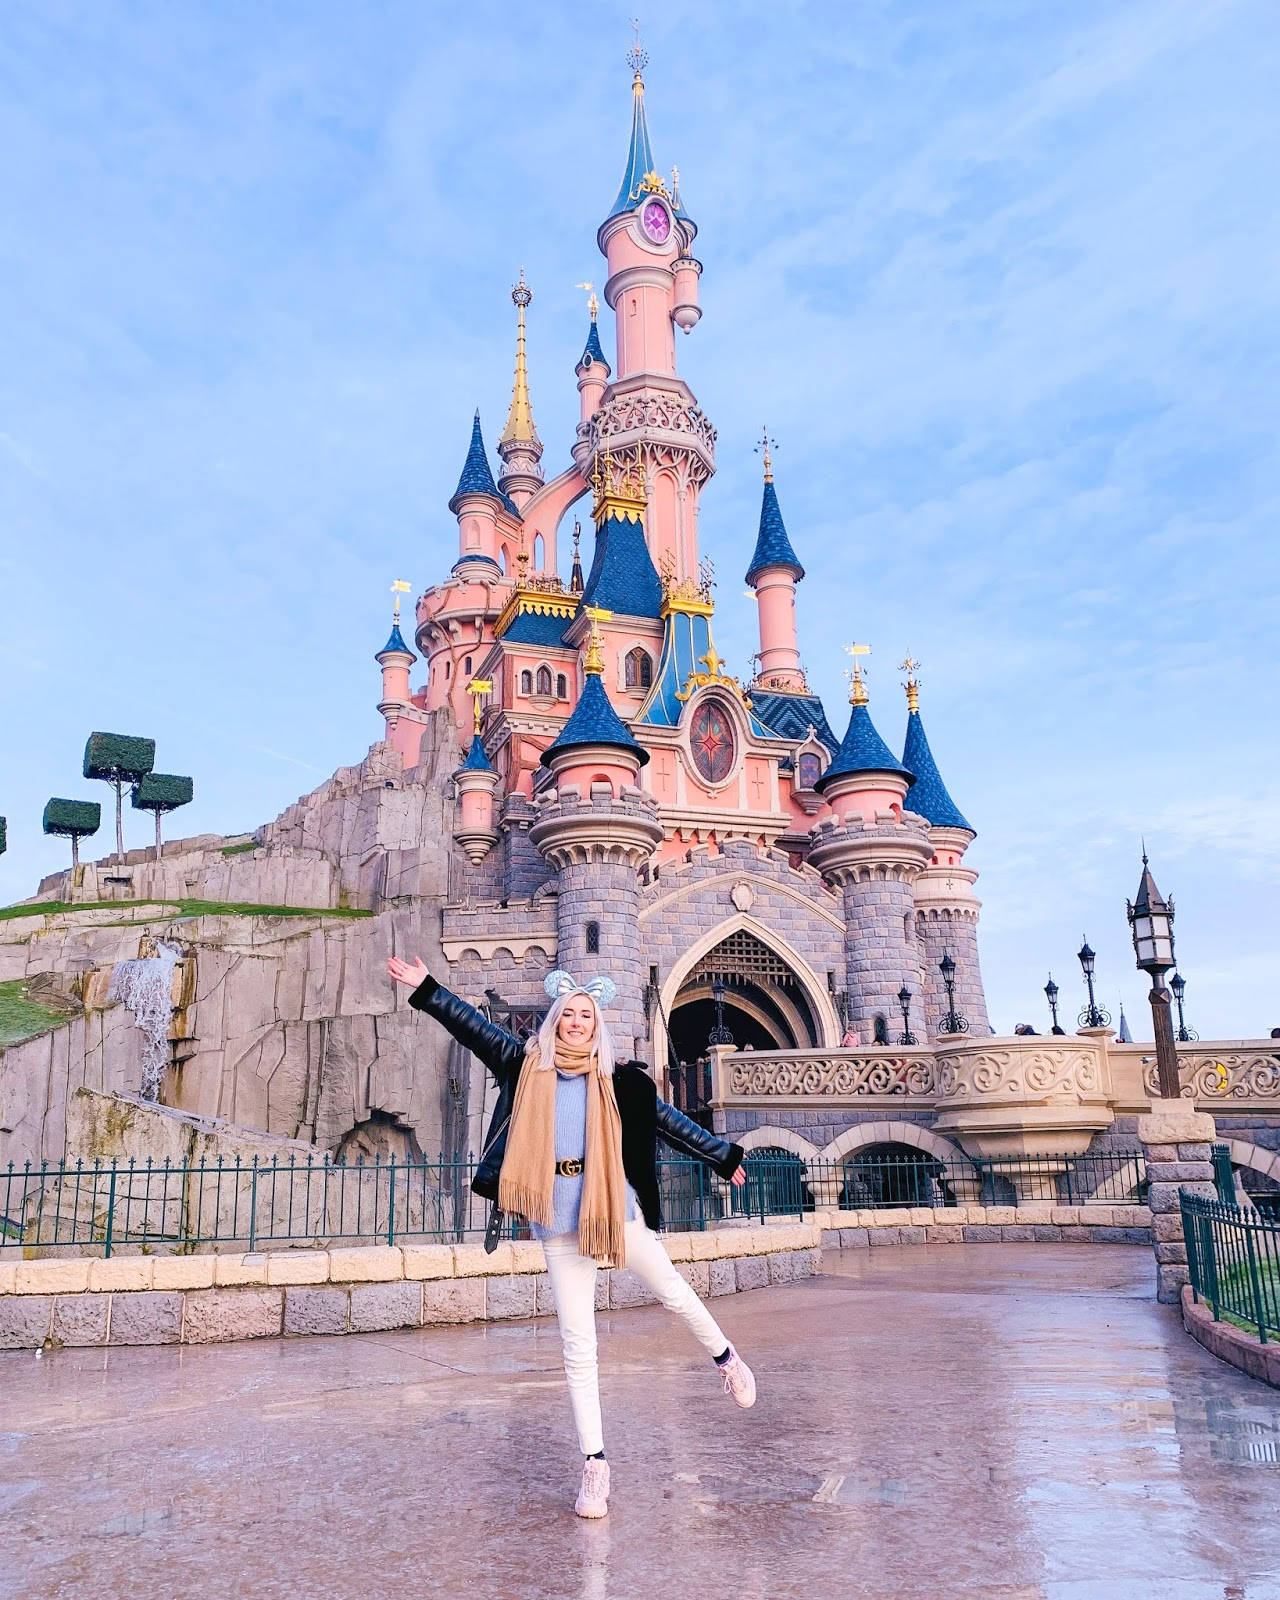 Best Instagram Spots In Disneyland Paris